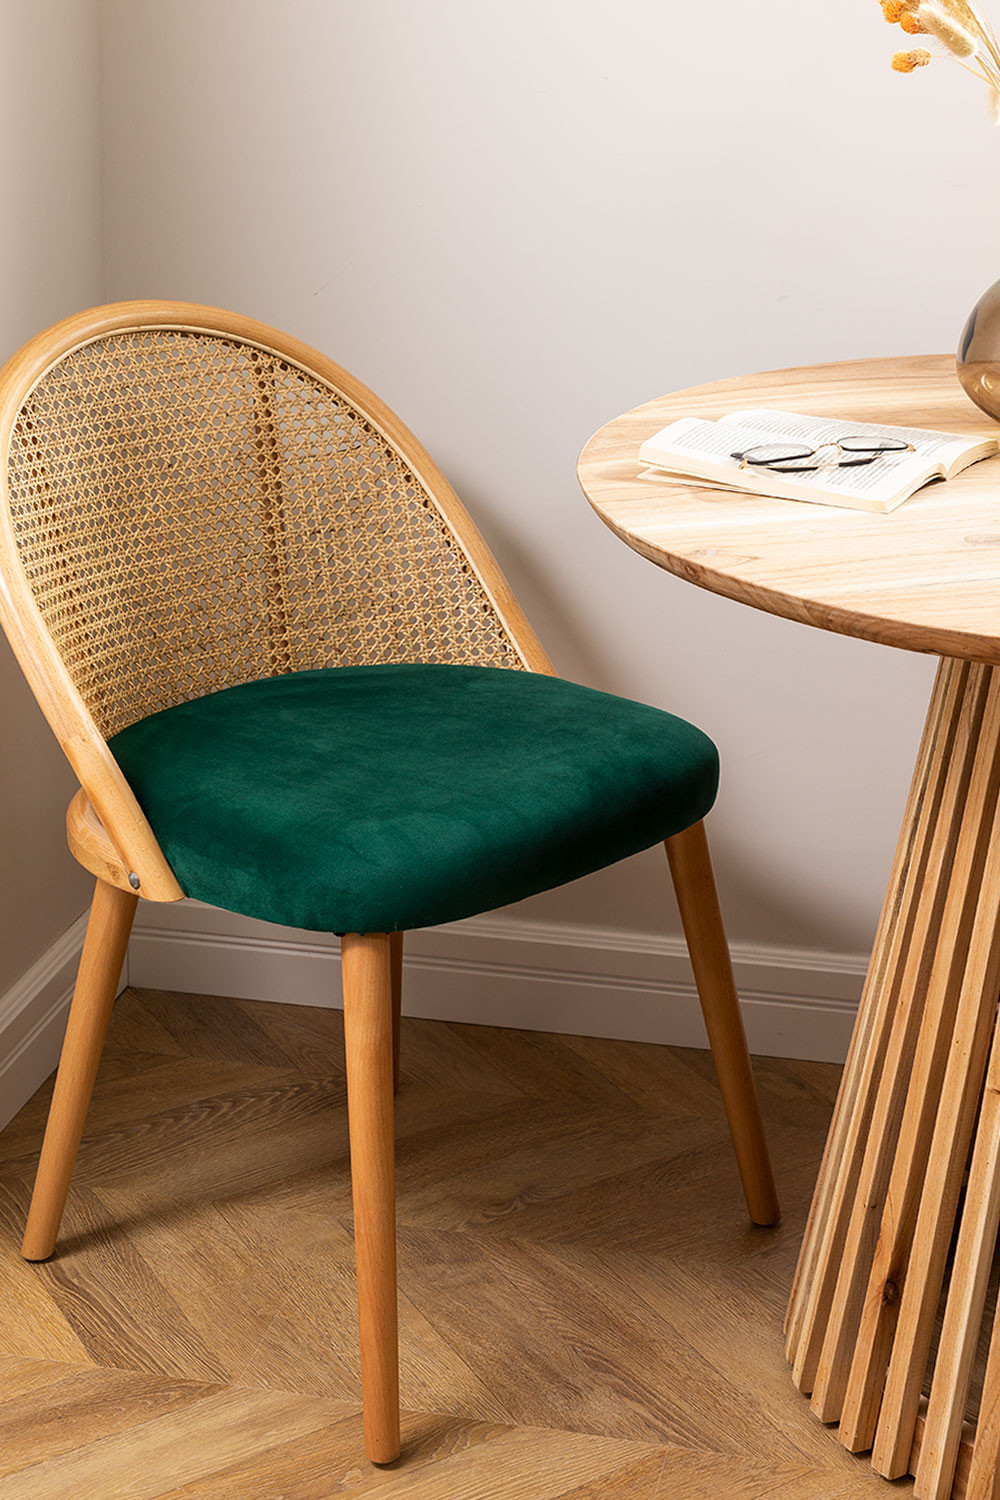 Wooden Dining Chair Kloe, gallery image 1